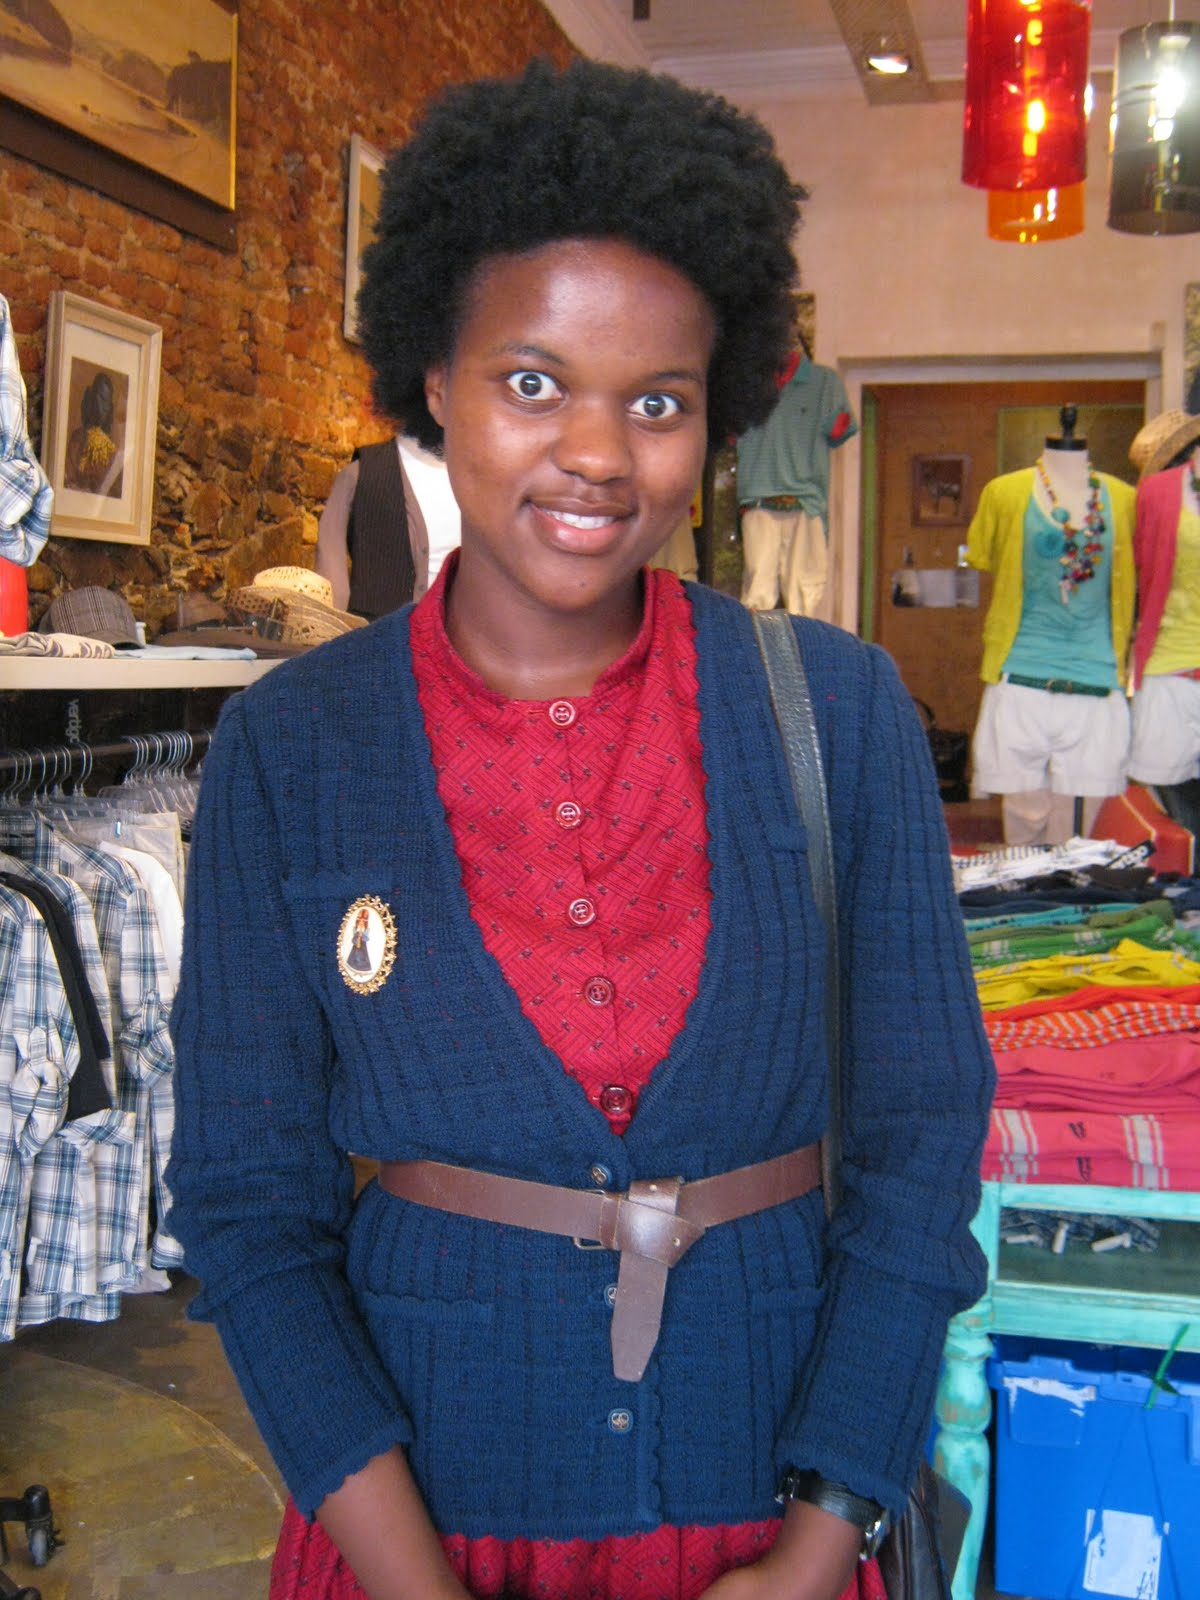 Urban Degree Phone and Map of Address: Shop 21 Woodlands Boulevard, Garsfontein Rd, Garsfontein, Gauteng, , South Africa, Pretoria, Business Reviews, Consumer Complaints and Ratings for Clothing Retailers in Pretoria. Contact Now!